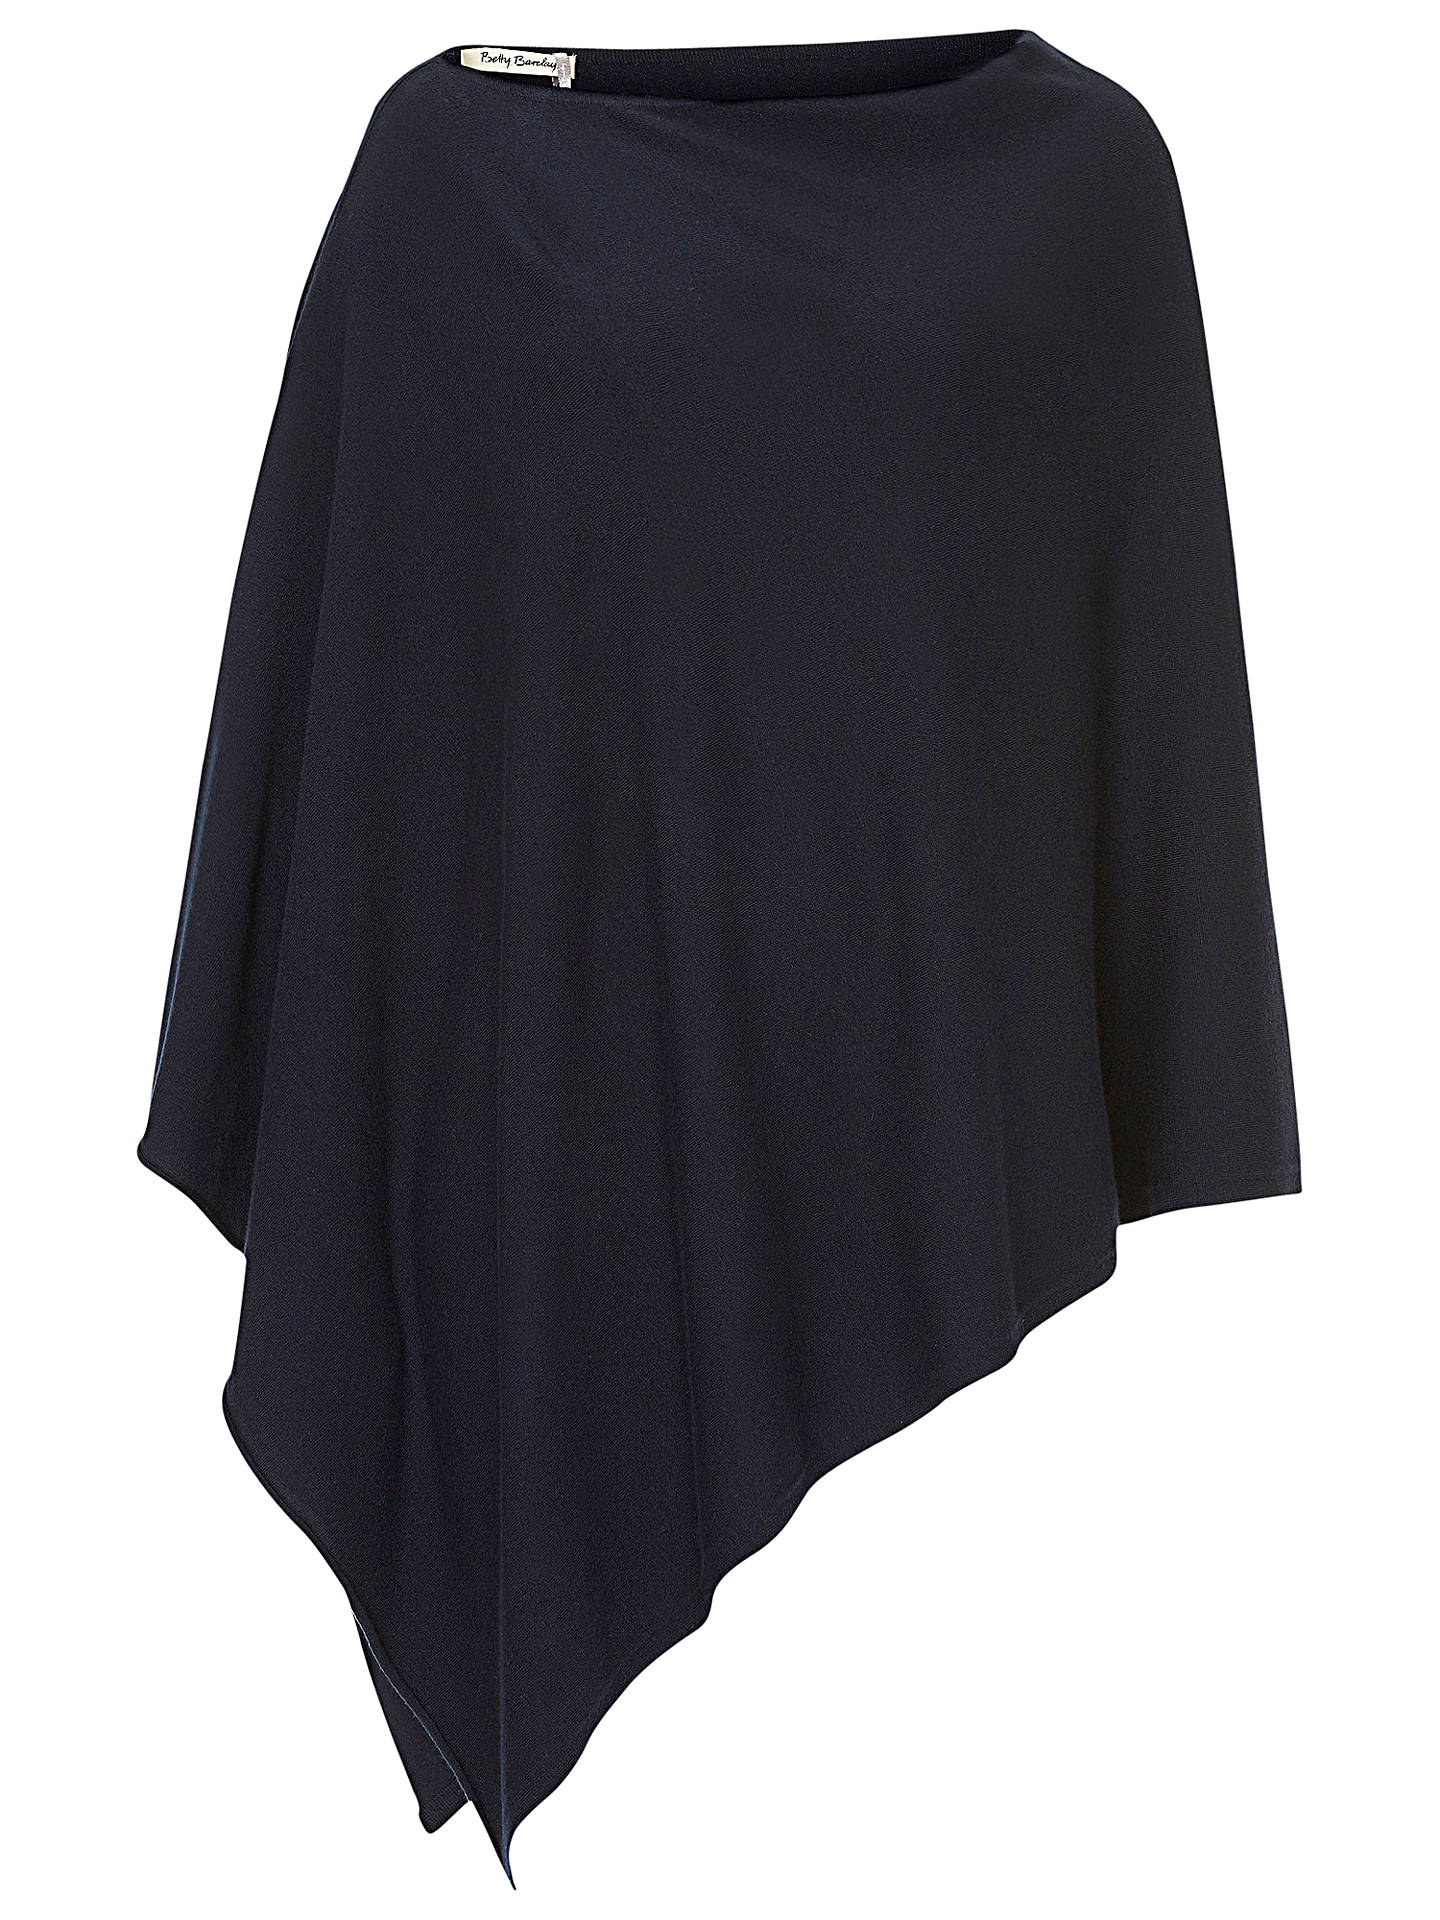 BuyBetty Barclay Knitted Poncho, Dark Sky Online at johnlewis.com